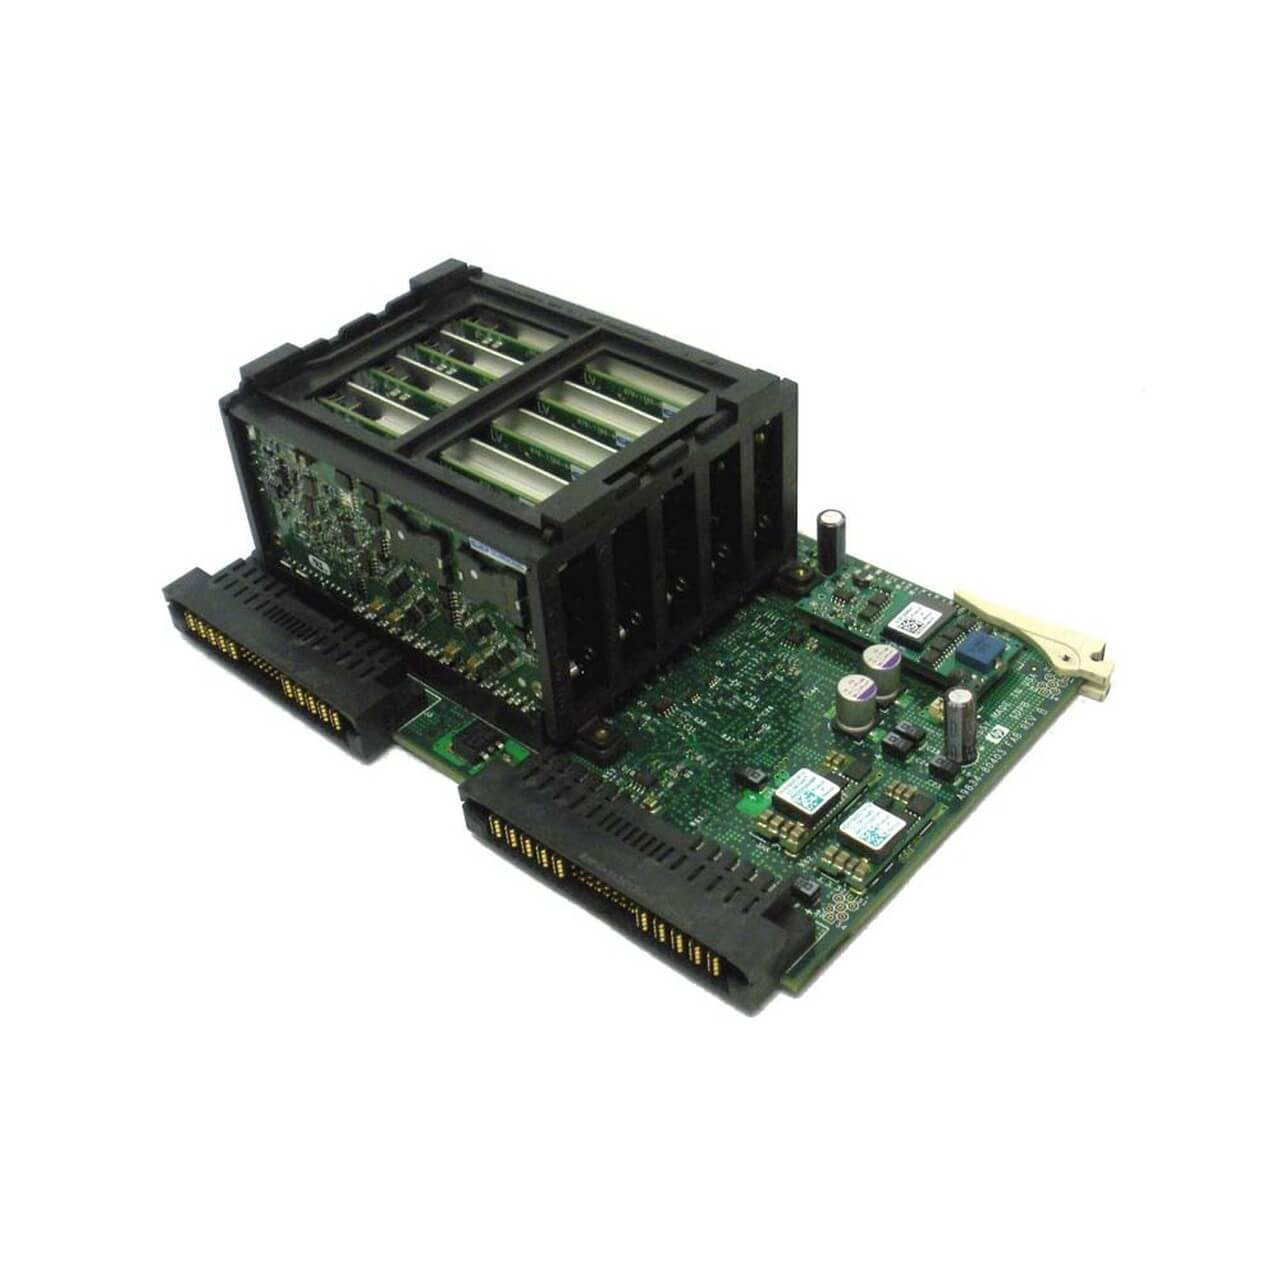 Buy & save on HP / HPE server backplanes from your trusted partners at Flagship Technologies. Browse our extensive inventory of refurbished computer server backplanes online and get the best deals to maintain or upgrade your IT project or data center.